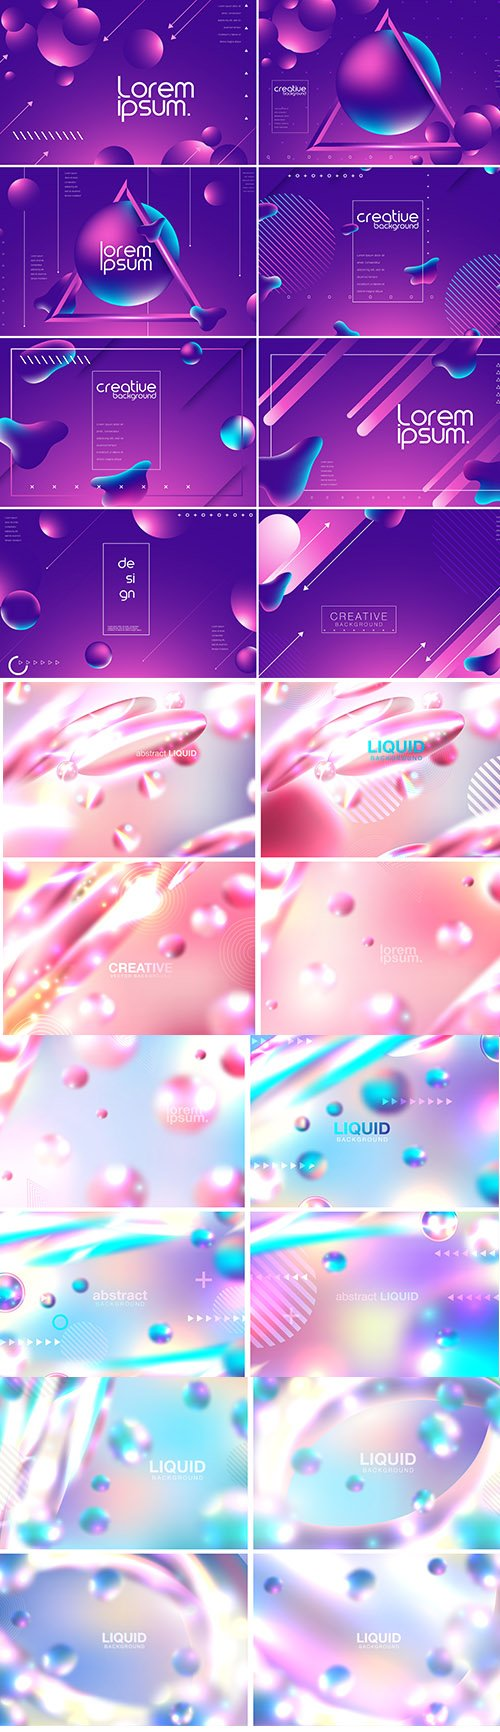 Abstract Vector Set of Background with Liquid Bubbles